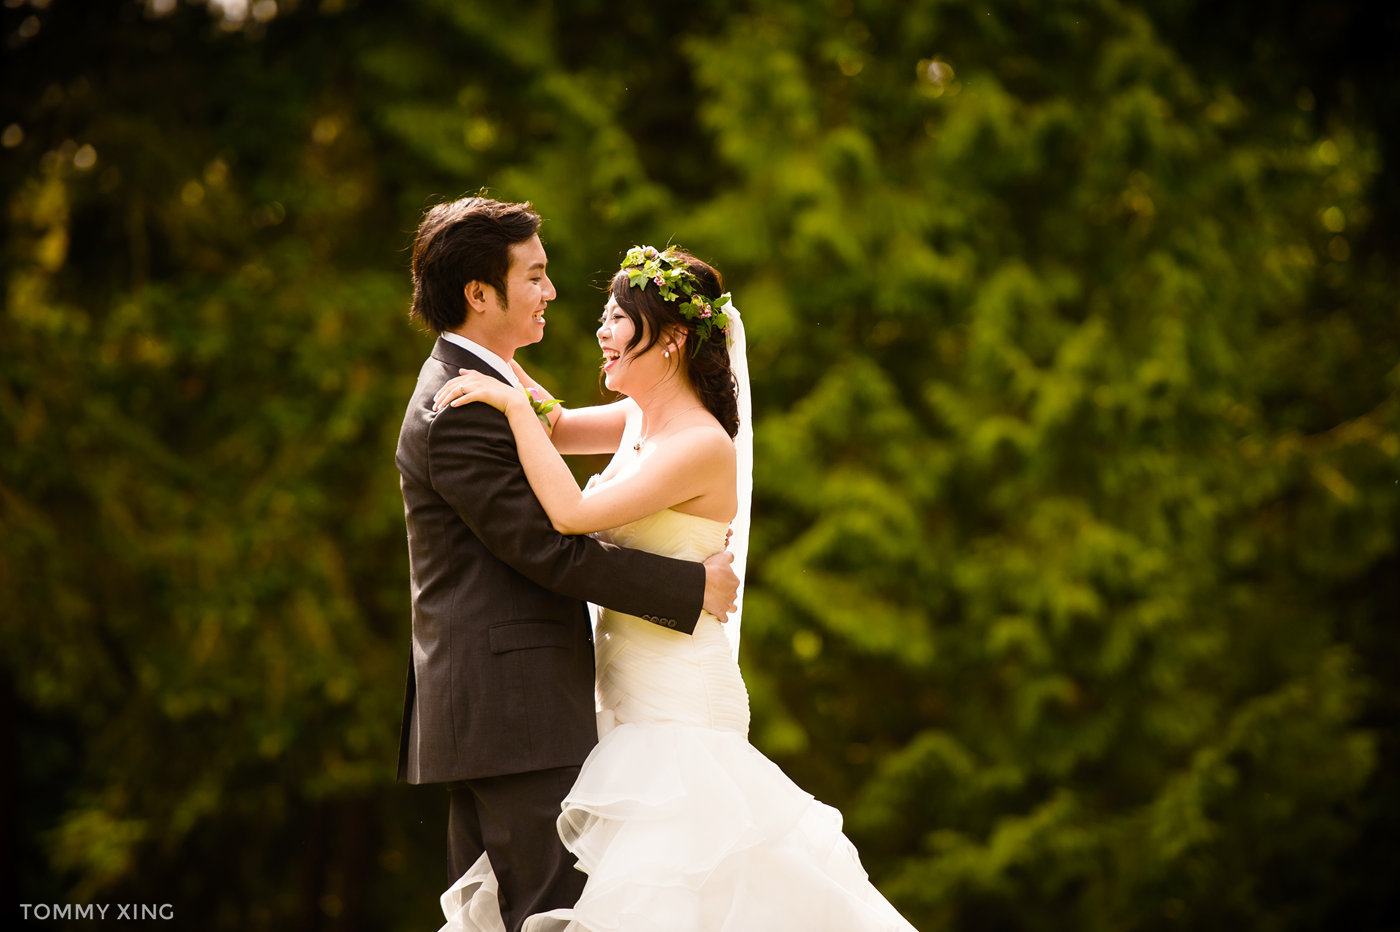 Seattle Wedding and pre wedding Los Angeles Tommy Xing Photography 西雅图洛杉矶旧金山婚礼婚纱照摄影师 119.jpg